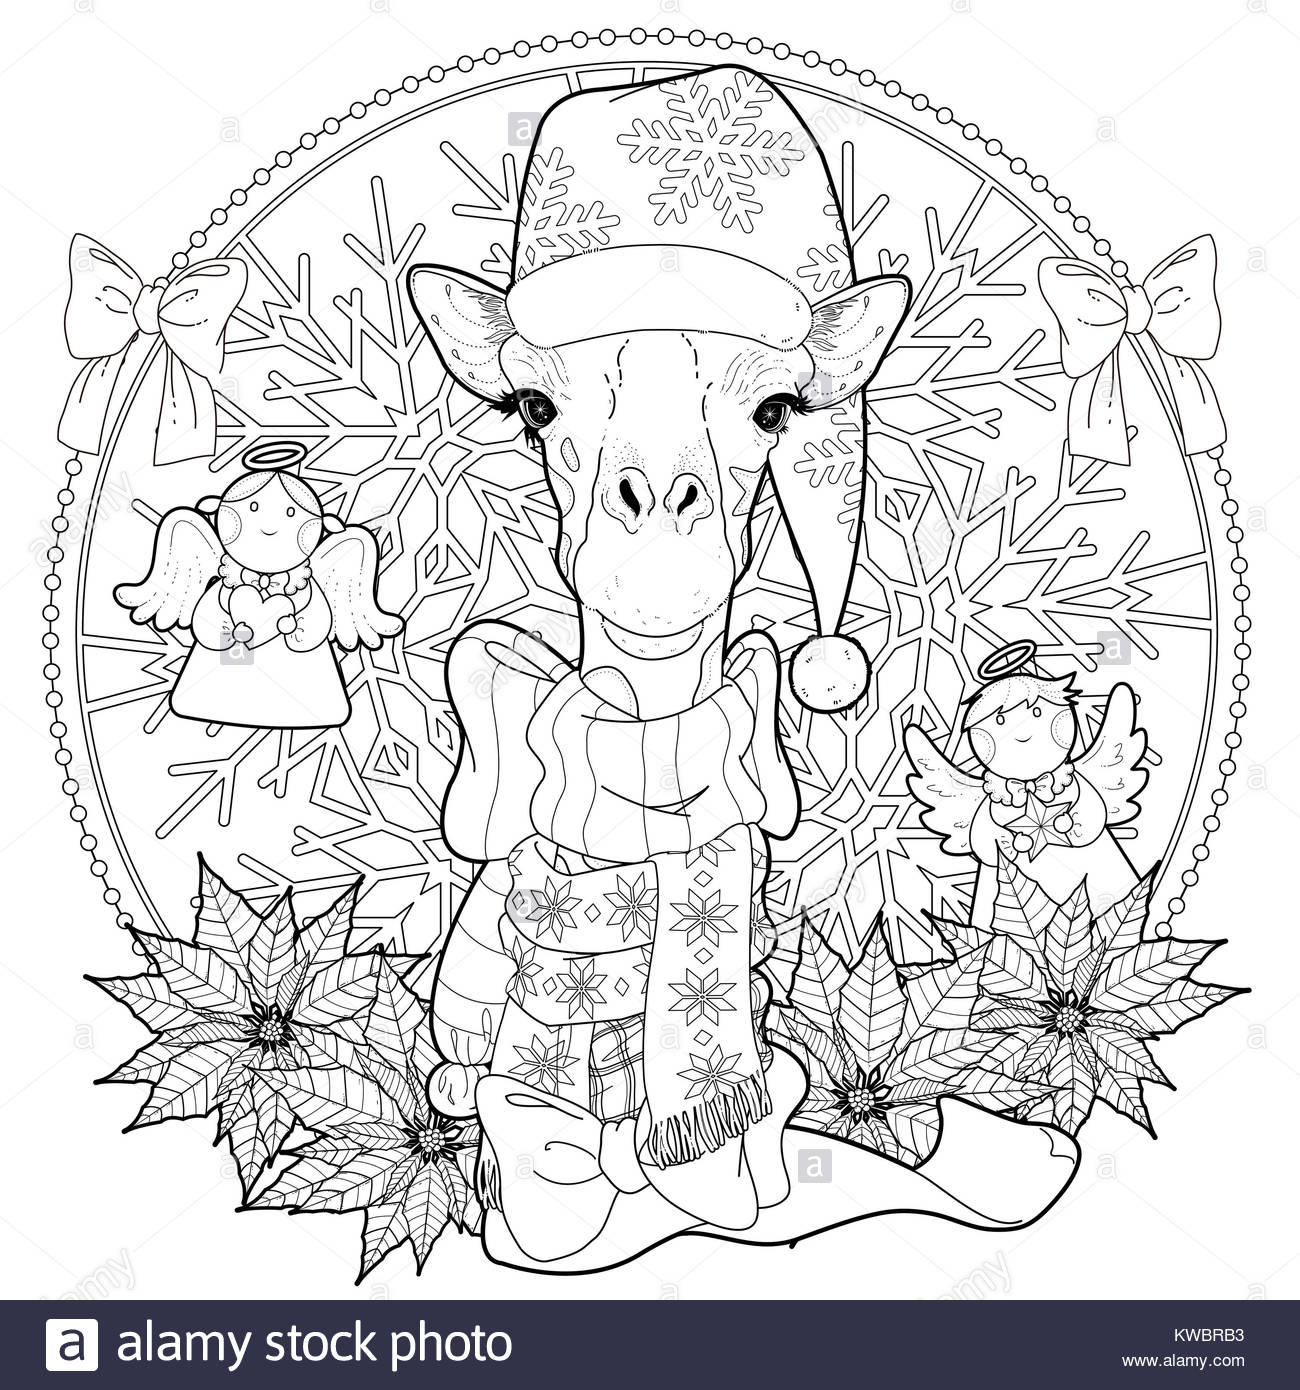 christmas giraffe coloring page with decorations in exquisite line